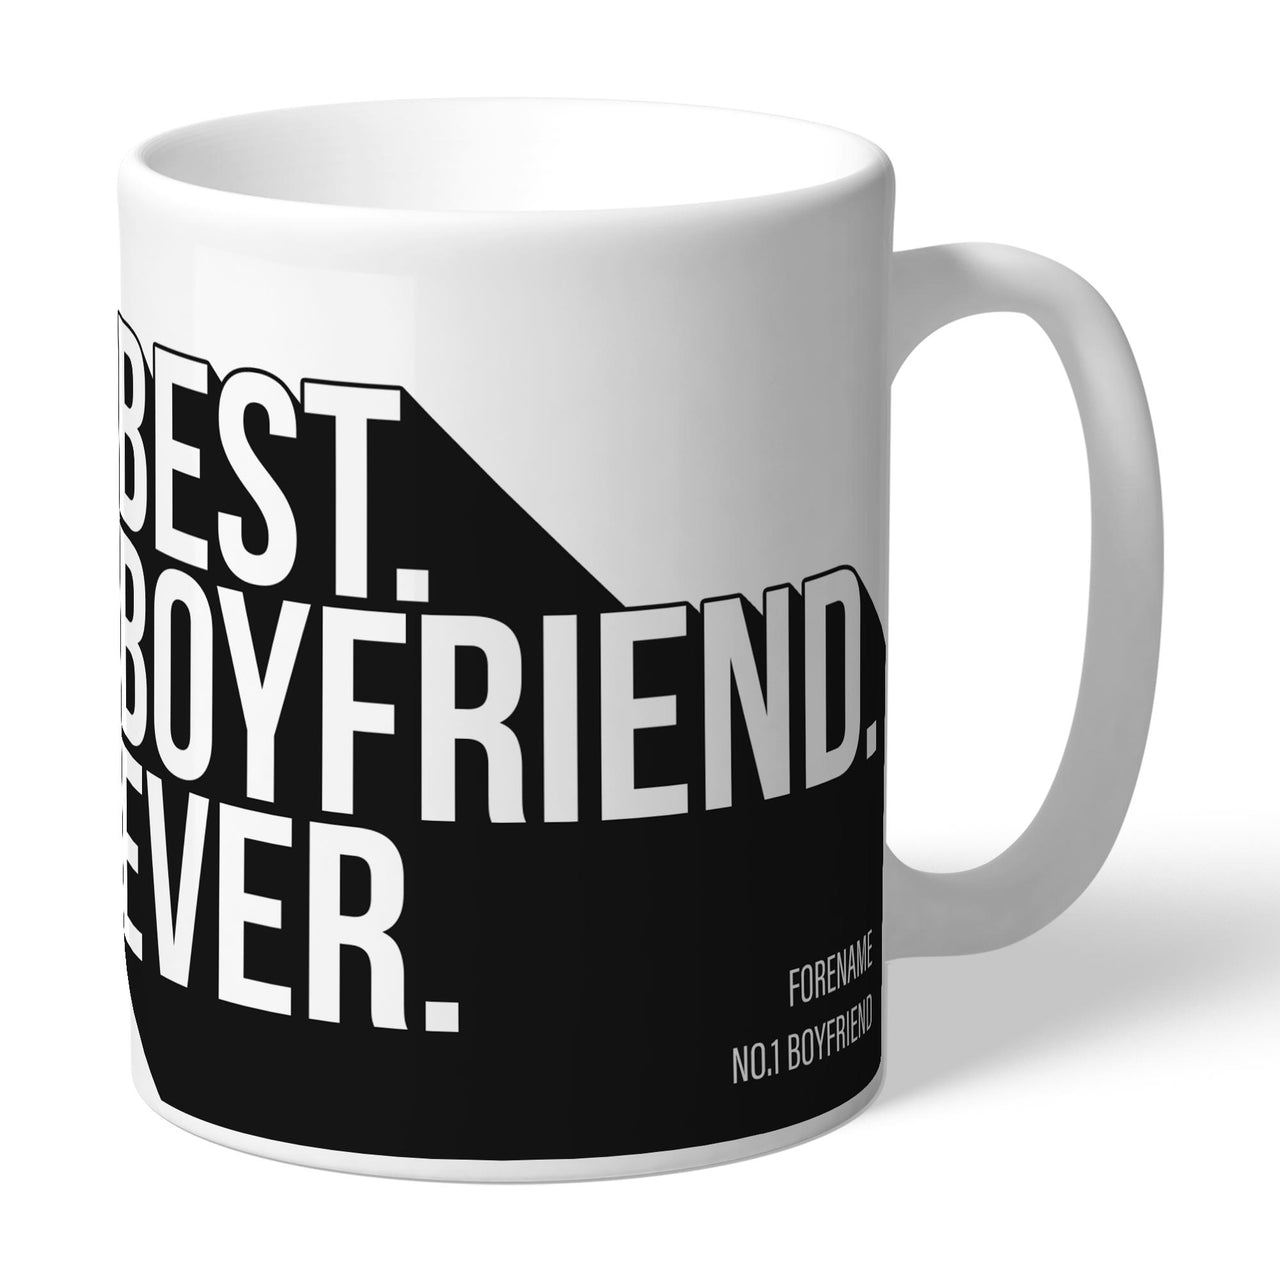 Newcastle United Best Boyfriend Ever Mugs, Gifts